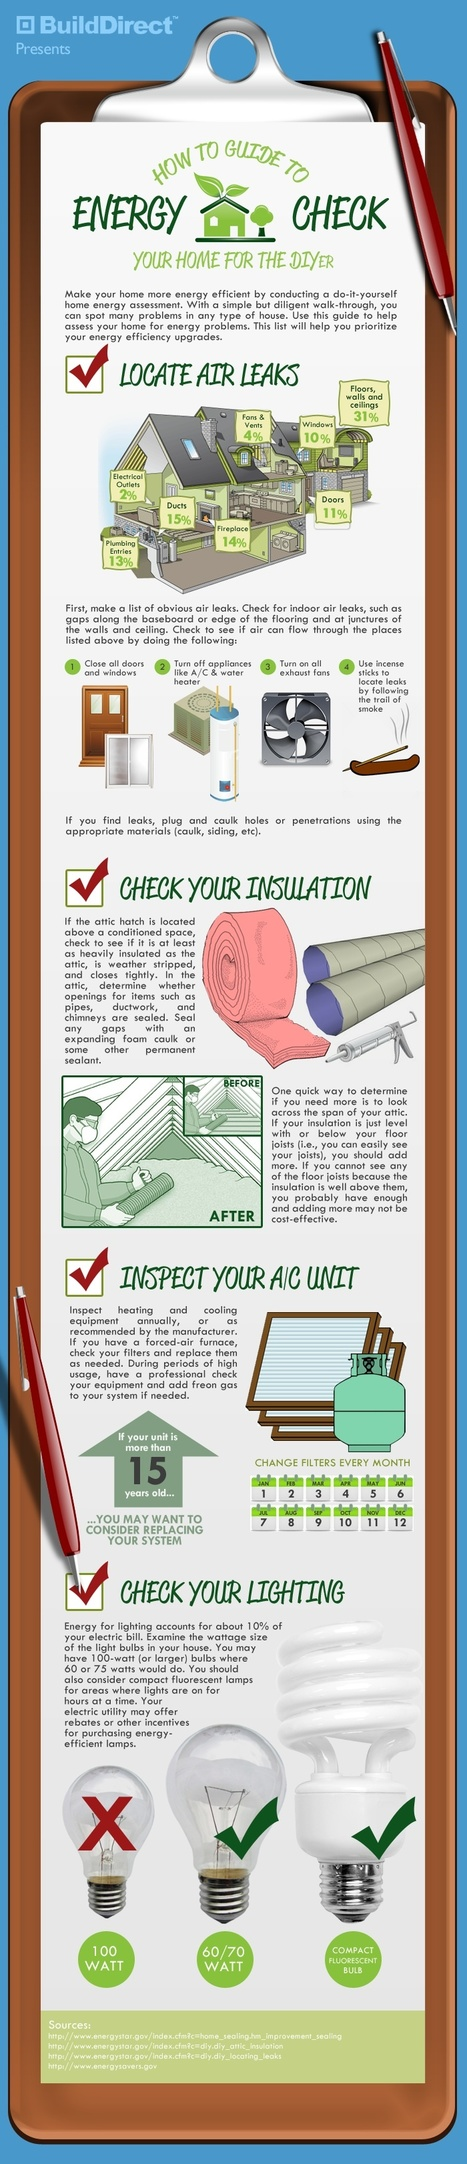 Baton Rouge Energy Efficiency DIY Home Energy Checklist | Air Circulation and Ceiling Fans | Scoop.it